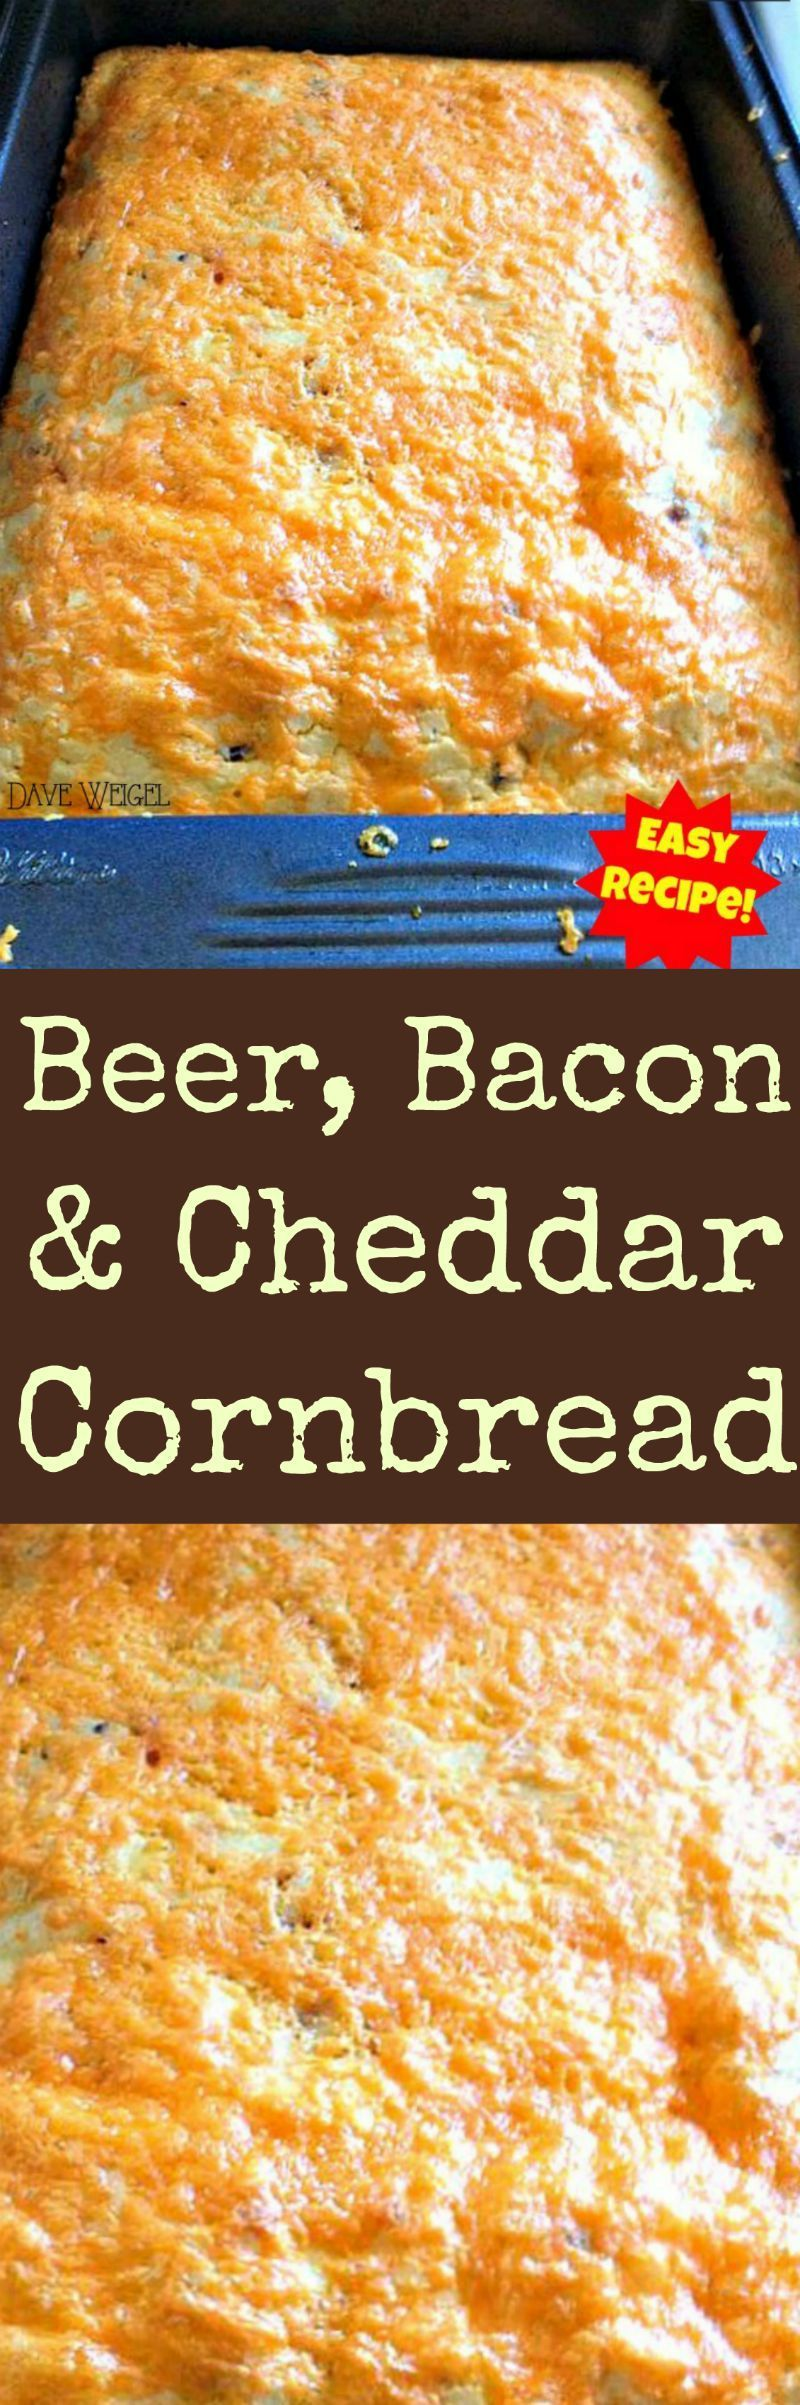 Beer, Bacon, and Cheddar Cornbread An easy recipe with a great flavor combination.